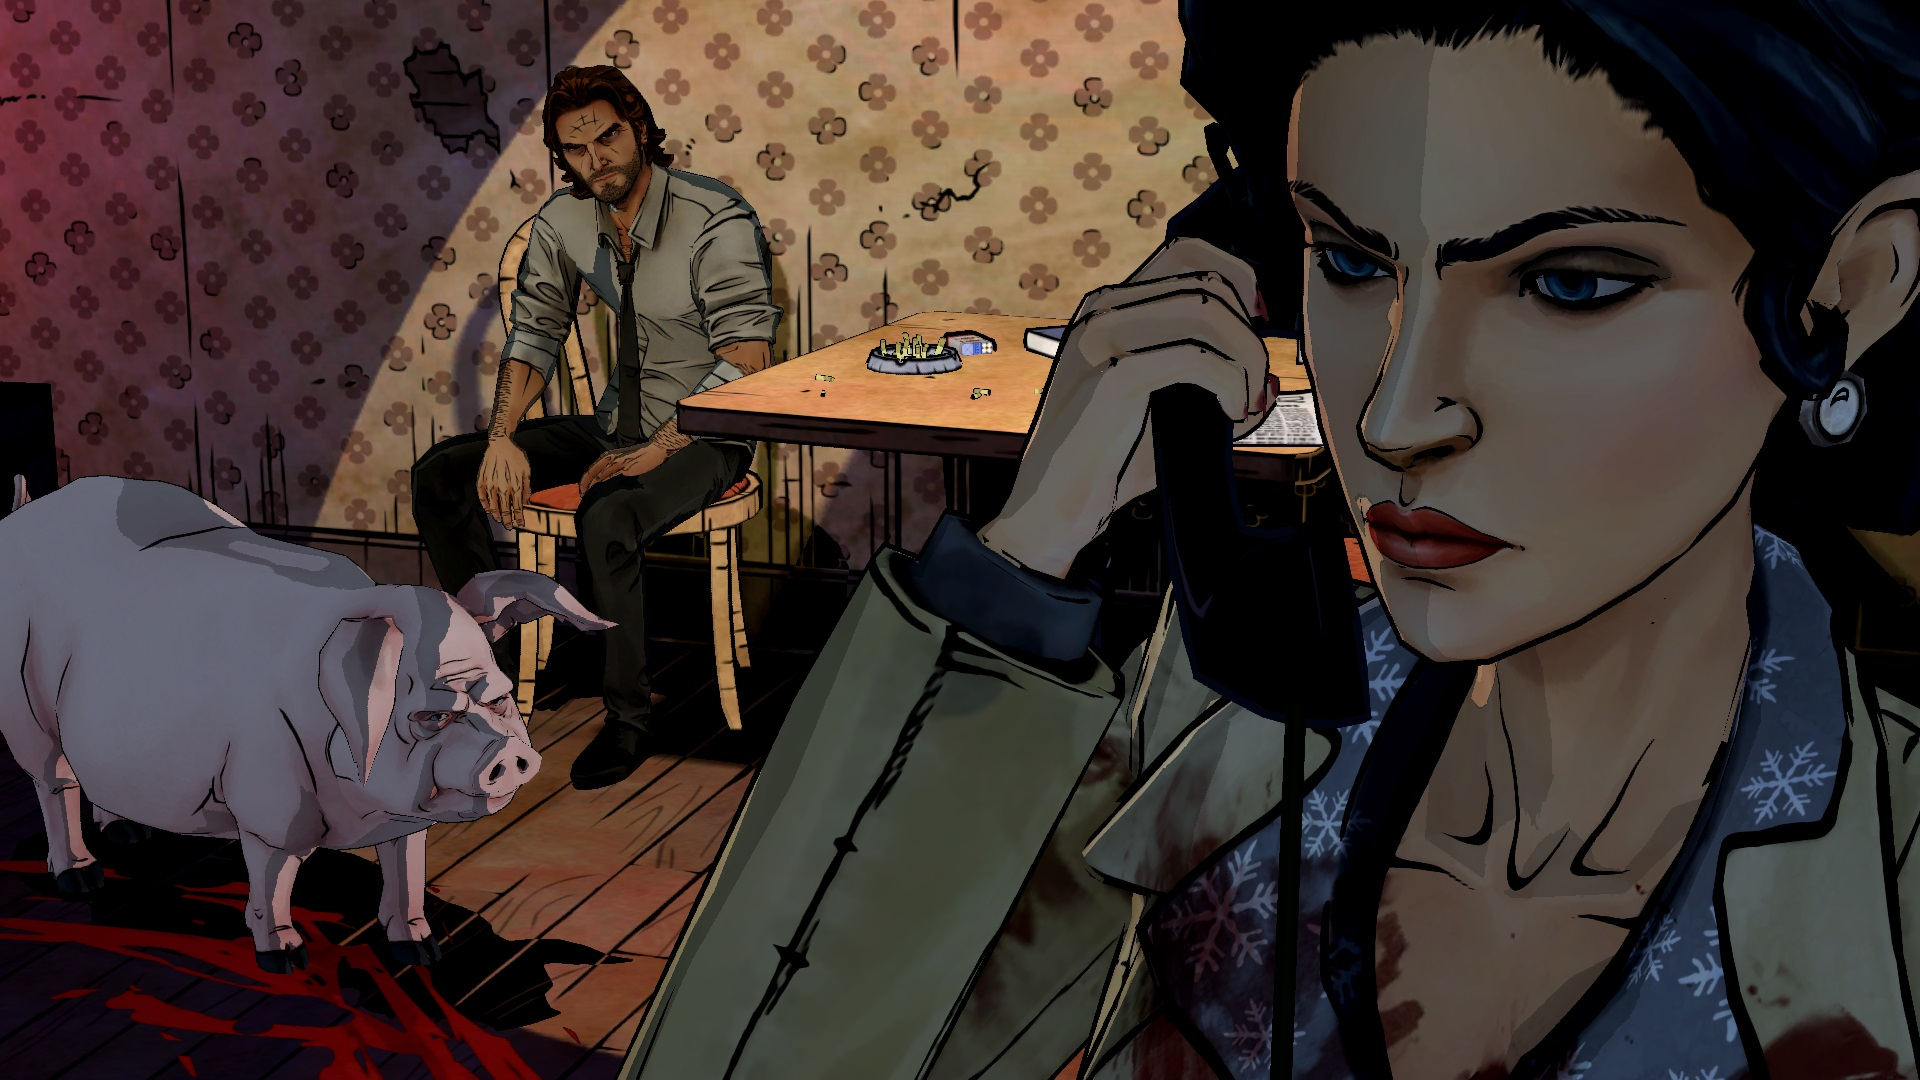 Snow White and Bigby Wolf are the two main characters of the story, and though they sound incongruous considering the stories they come from, they're a very well-executed team for this adventure.